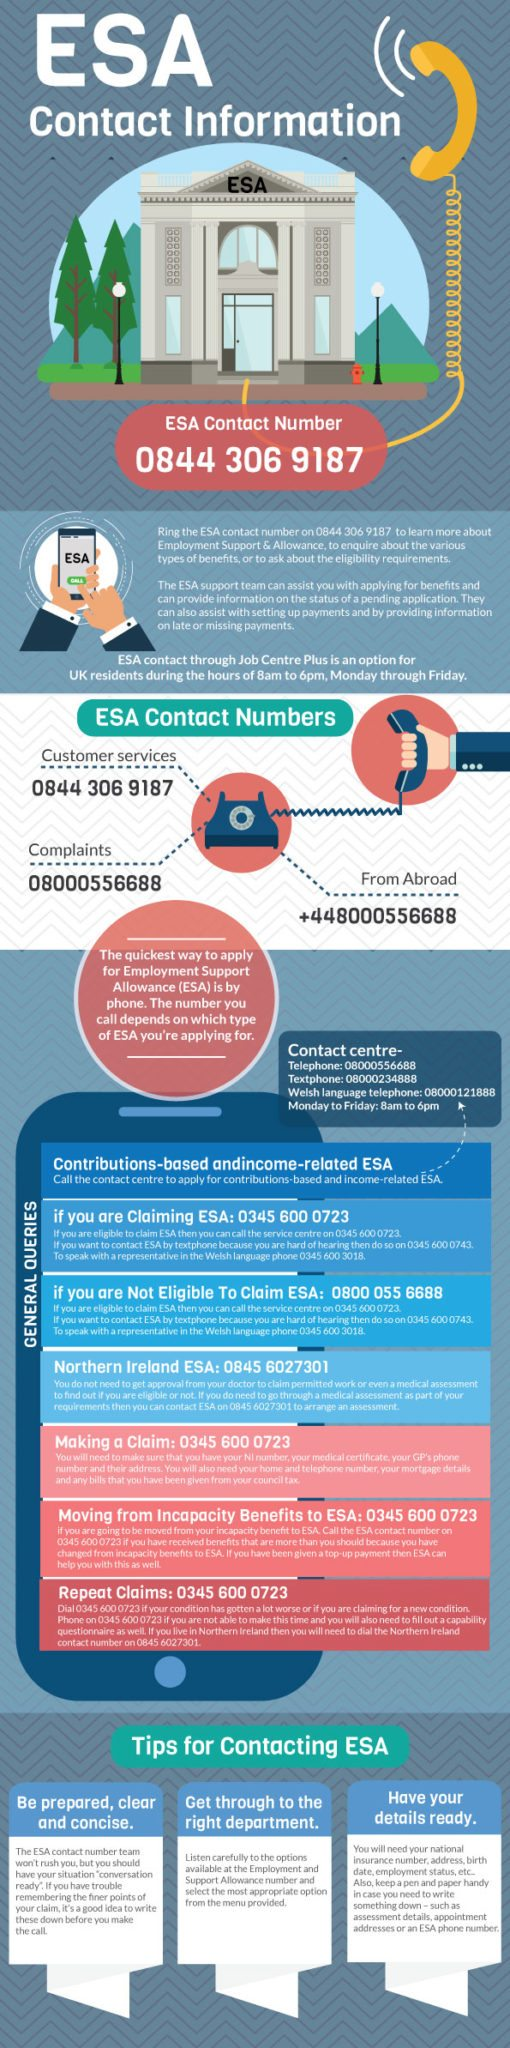 ESA Tax Credit Helpline